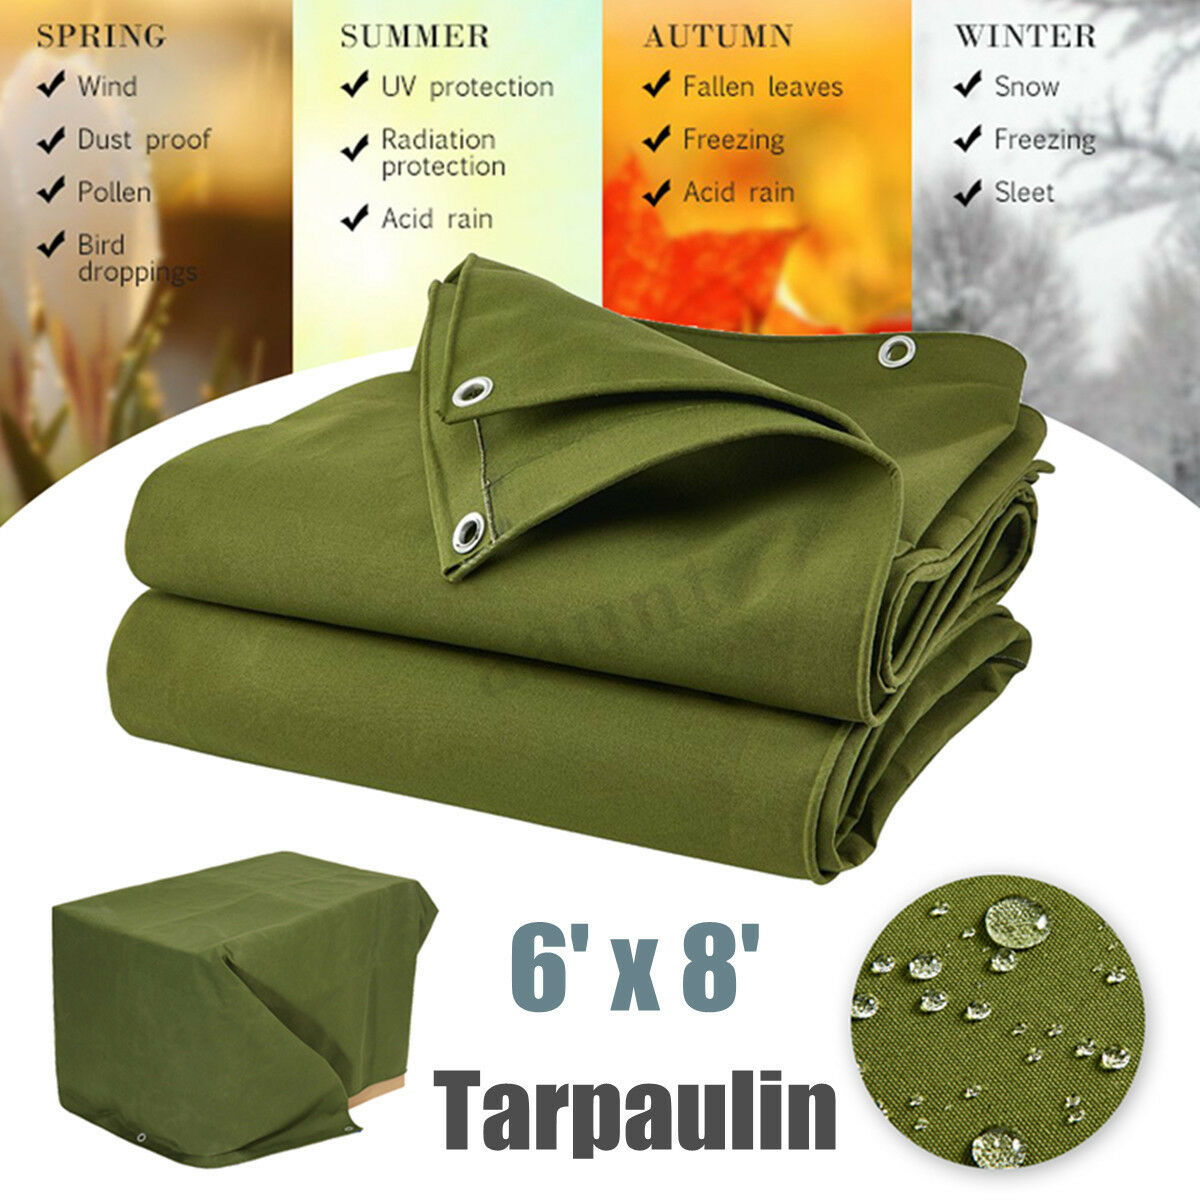 1.8M x 2.4M Heavy Duty Canvas Tarp Tarpaulin Waterproof Dustproof Outdoor Green